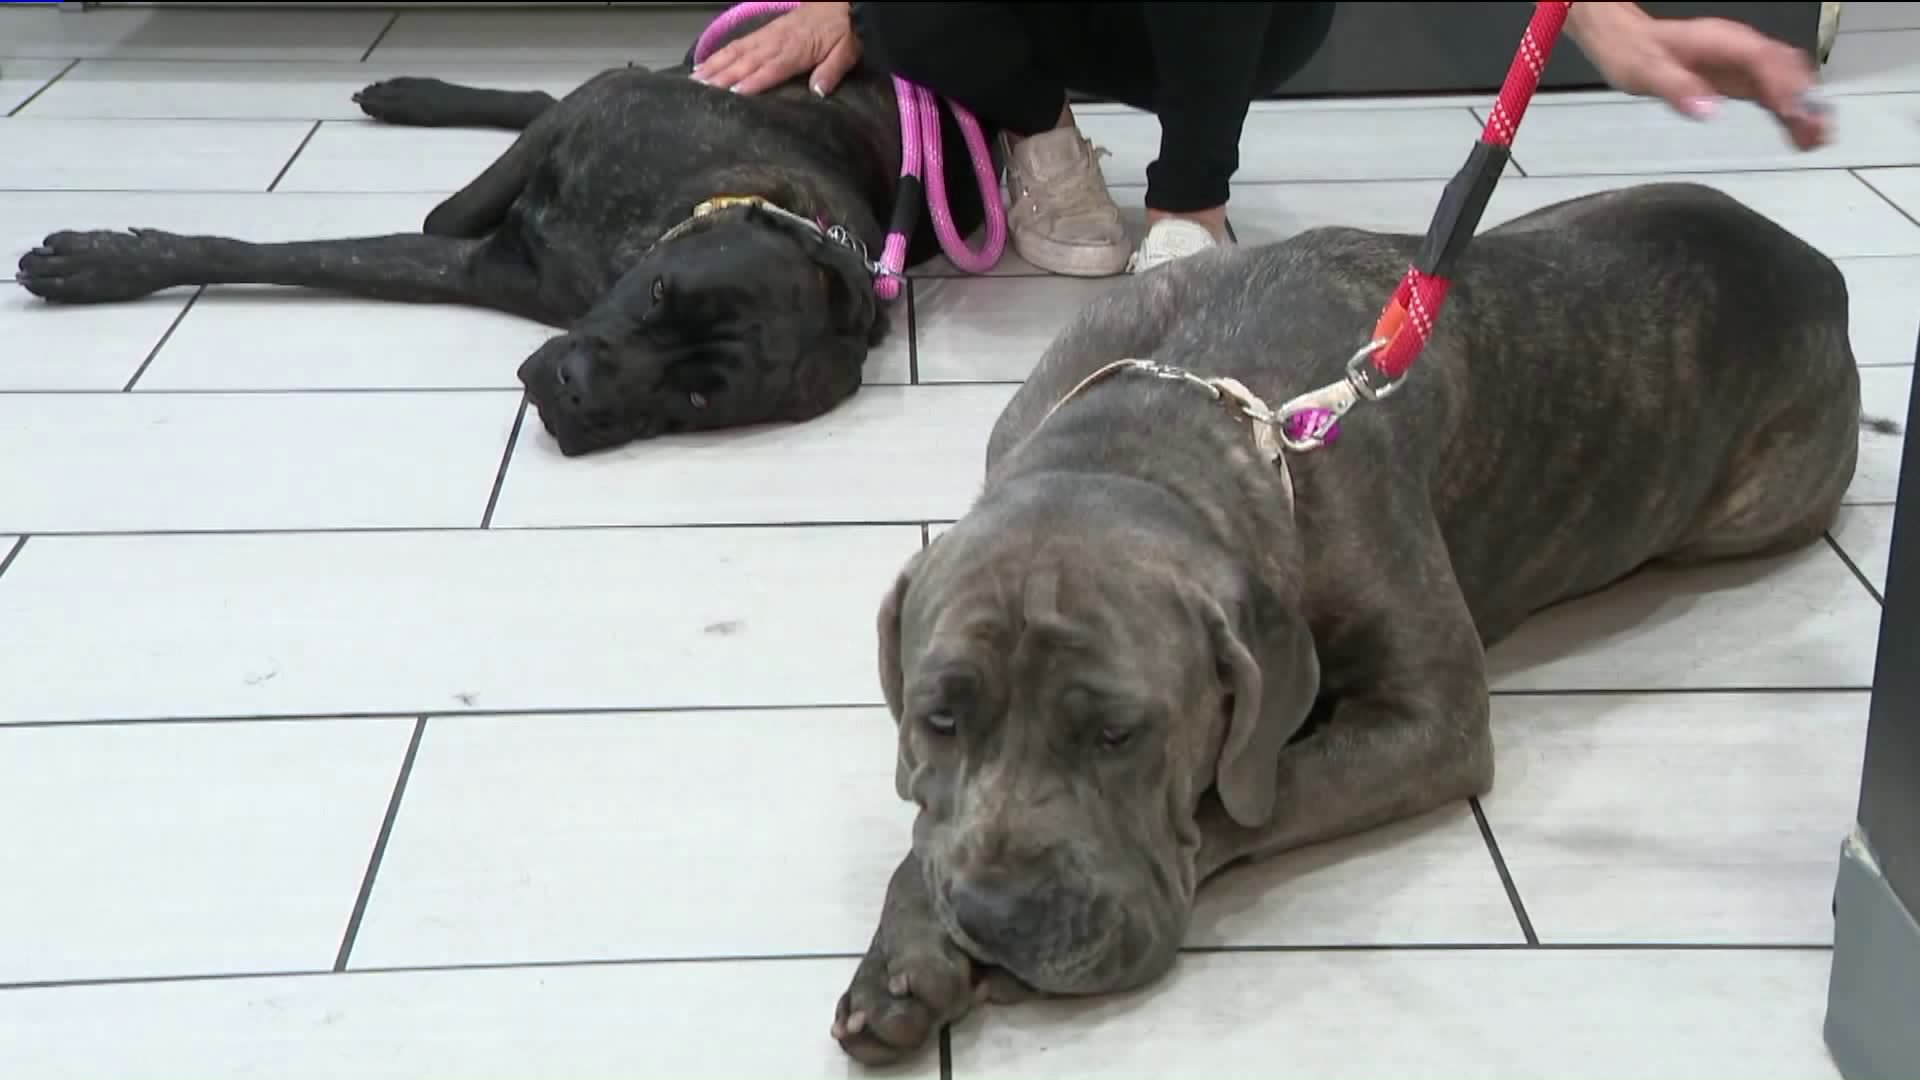 Onyx and Starlett were available for adoption on June 13, 2019, a month after they gained notoriety when they were seen inside a stolen SUV that led police on a wild chase through the San Fernando Valley on May 21, 2019. (Credit: KTLA)